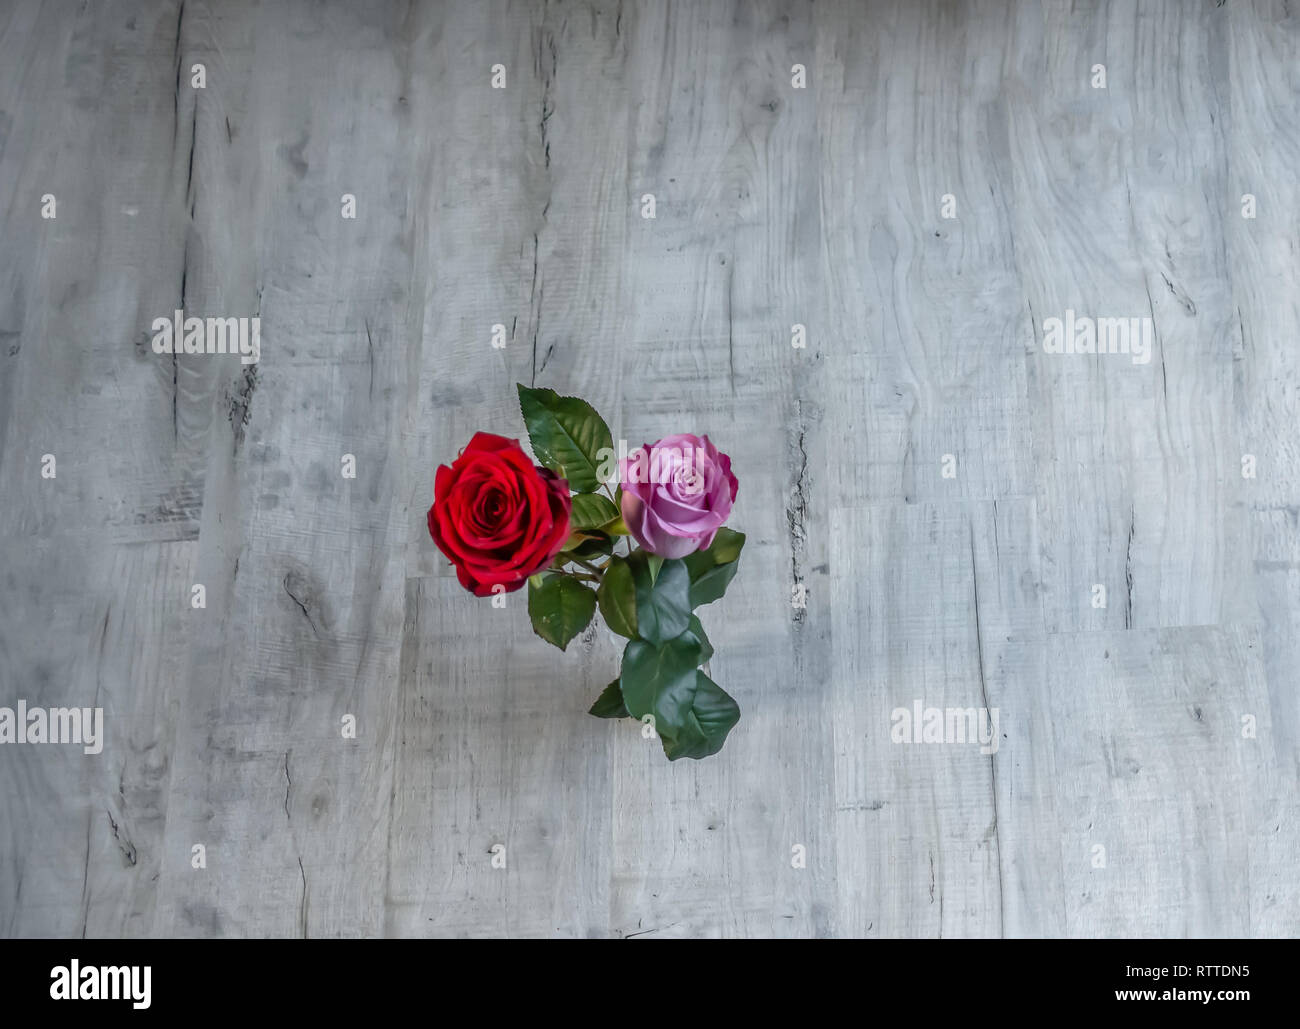 Flatbed shot of two blooming roses on a grey wooden background.  Graphic resource shot with space all around the central roses. - Stock Image